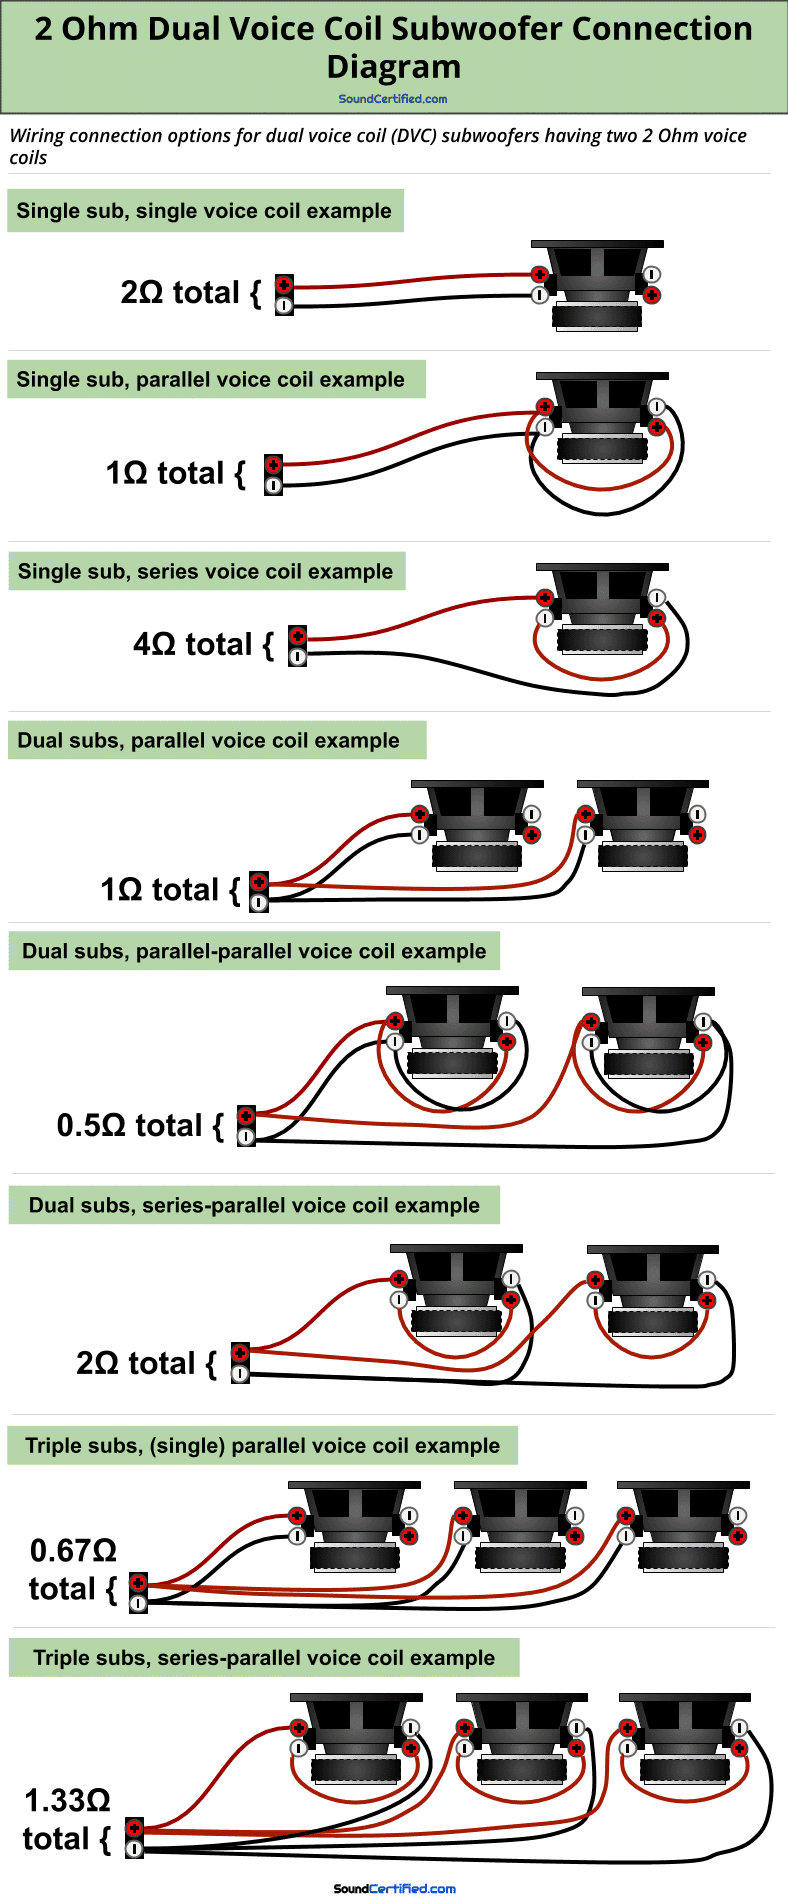 2 Ohm dual voice coil subwoofer wiring diagram